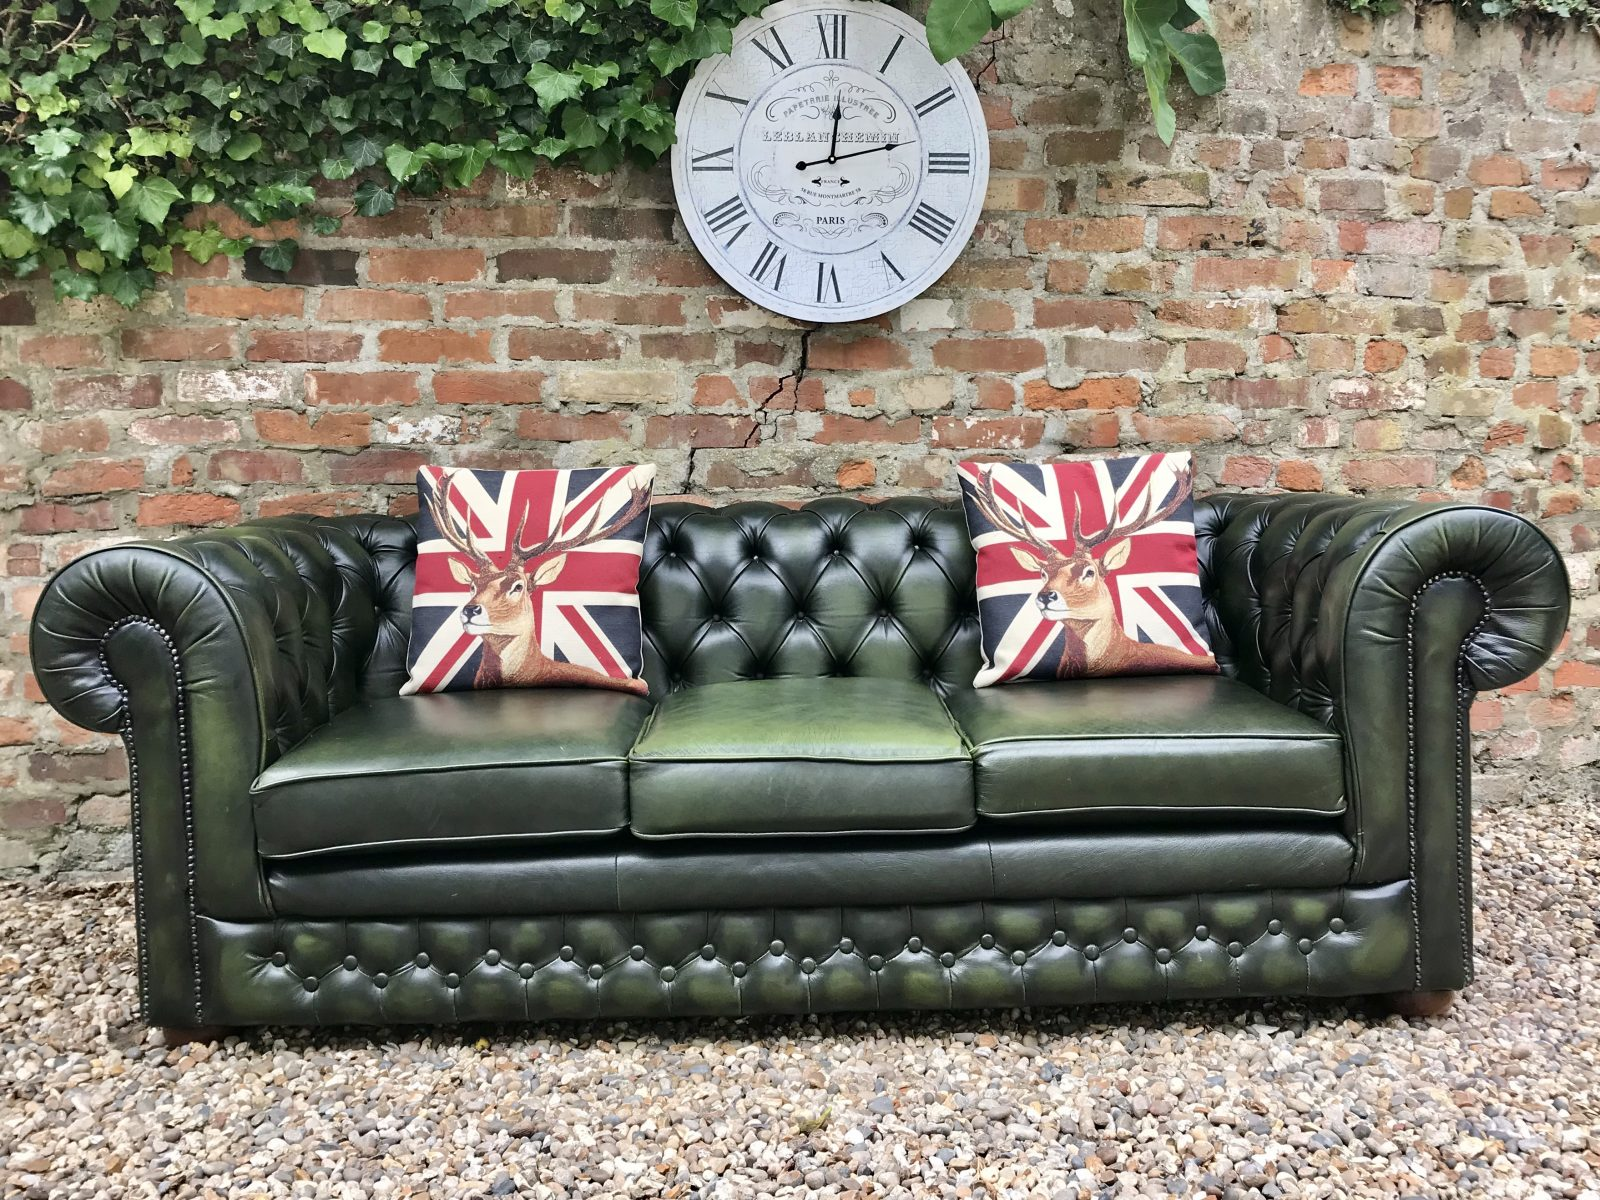 Forest Green Thomas Lloyd Chesterfield Sofa.